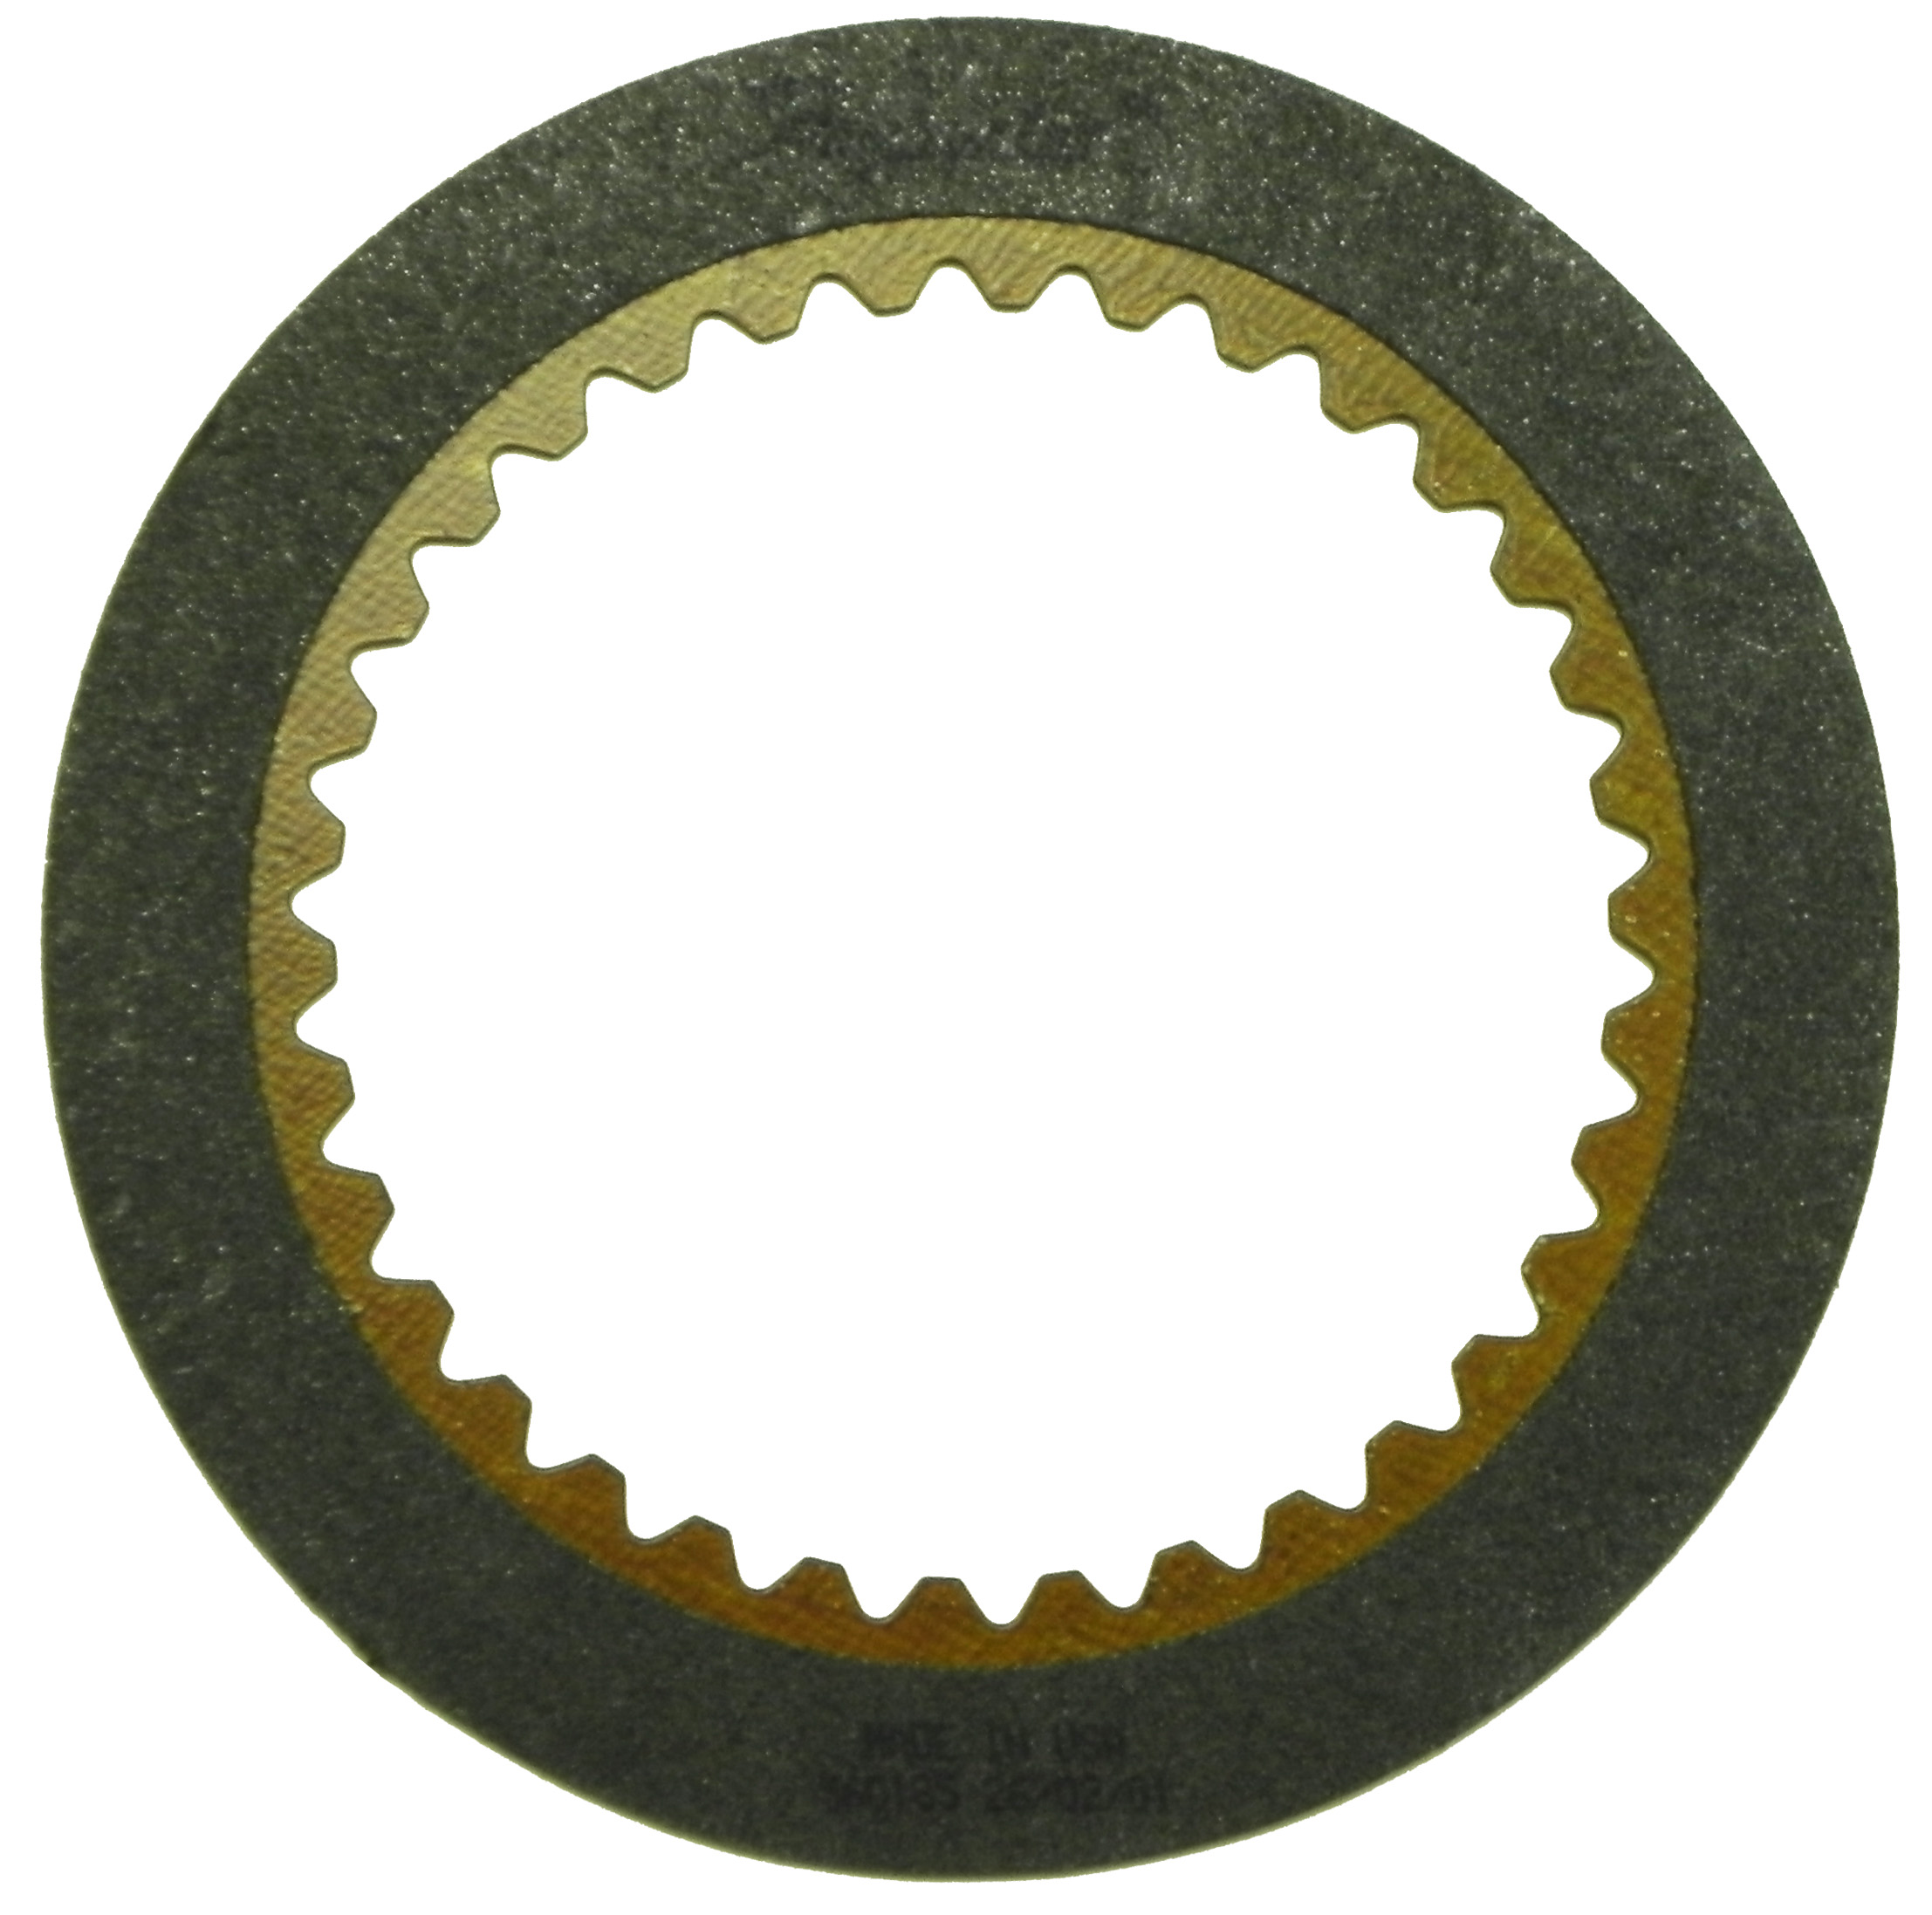 3HP-22, 4HP-22 High Energy Friction Clutch Plate